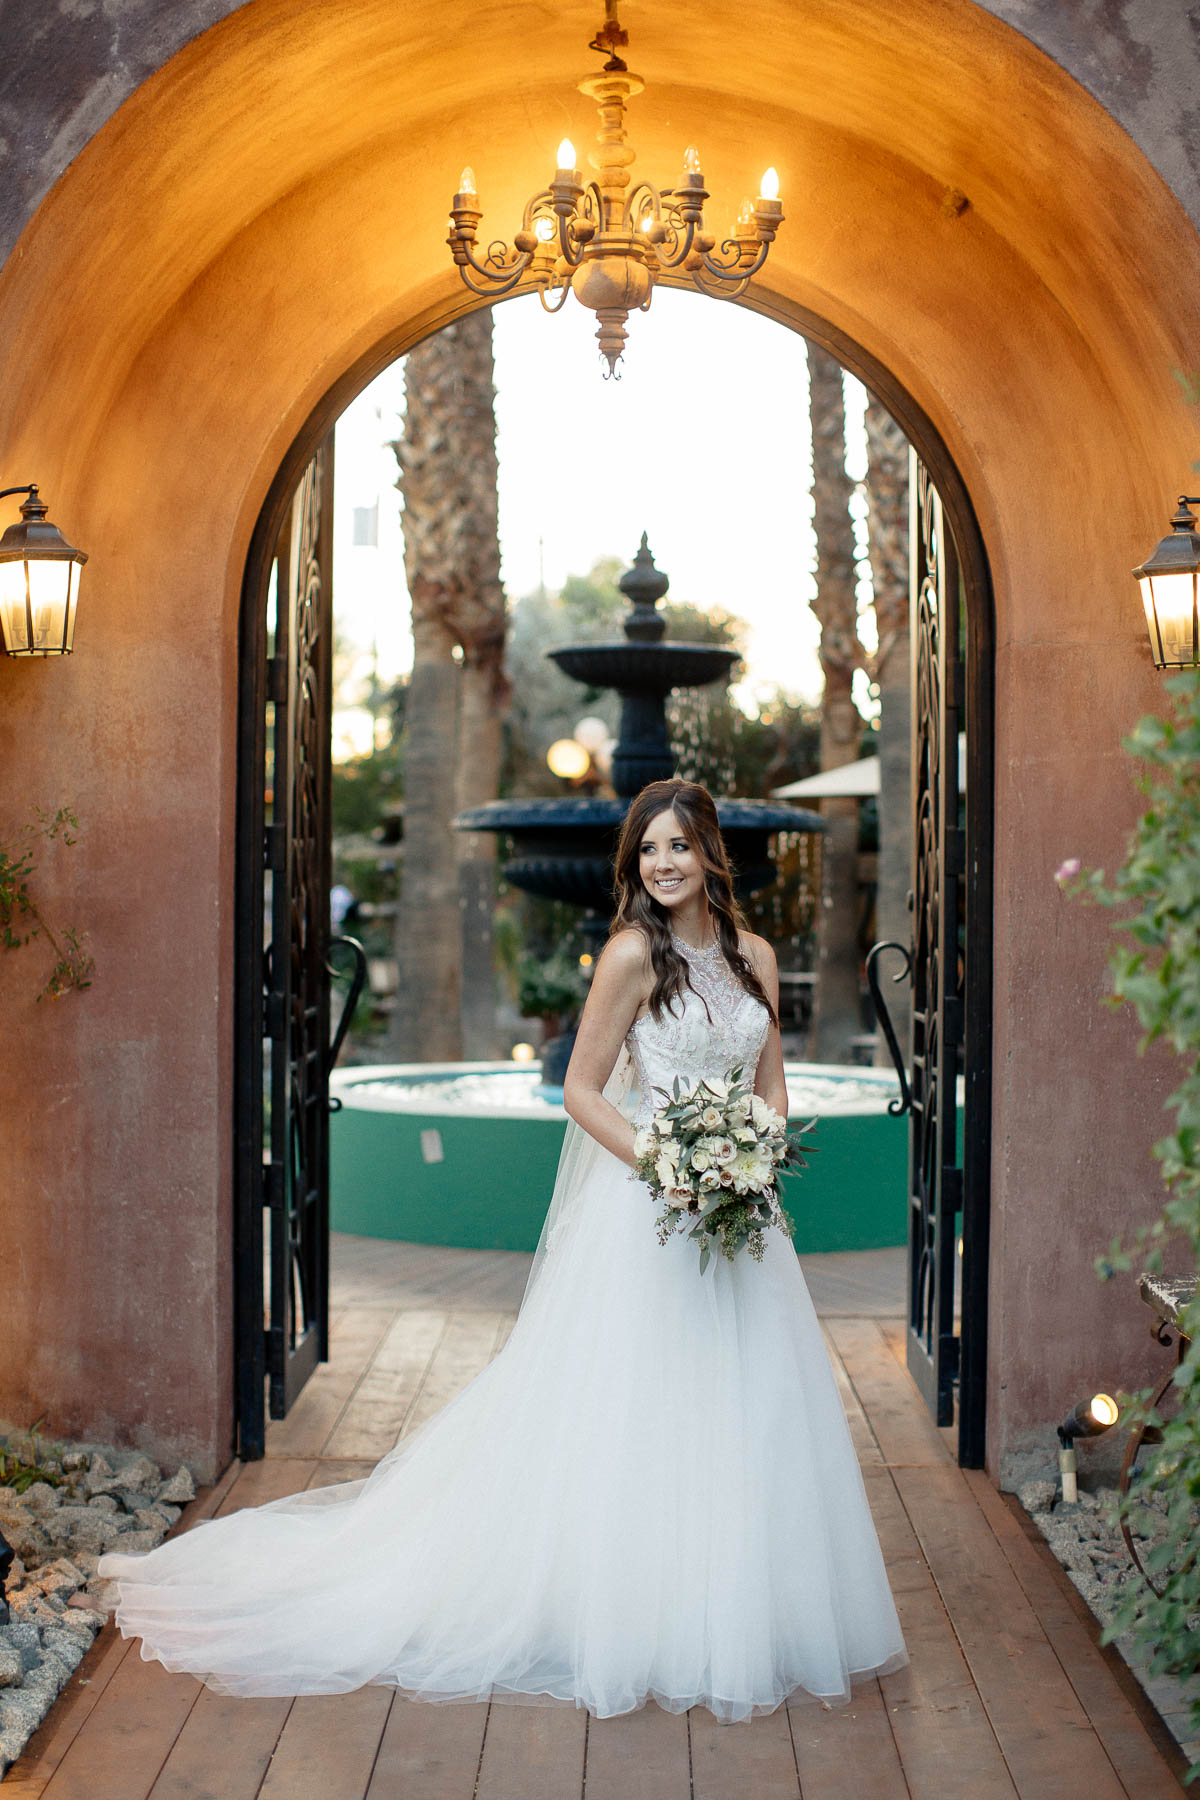 161112-Luxium-Weddings-Arizona-Jon-Madison-Boojum-Tree-First-Look-040.jpg